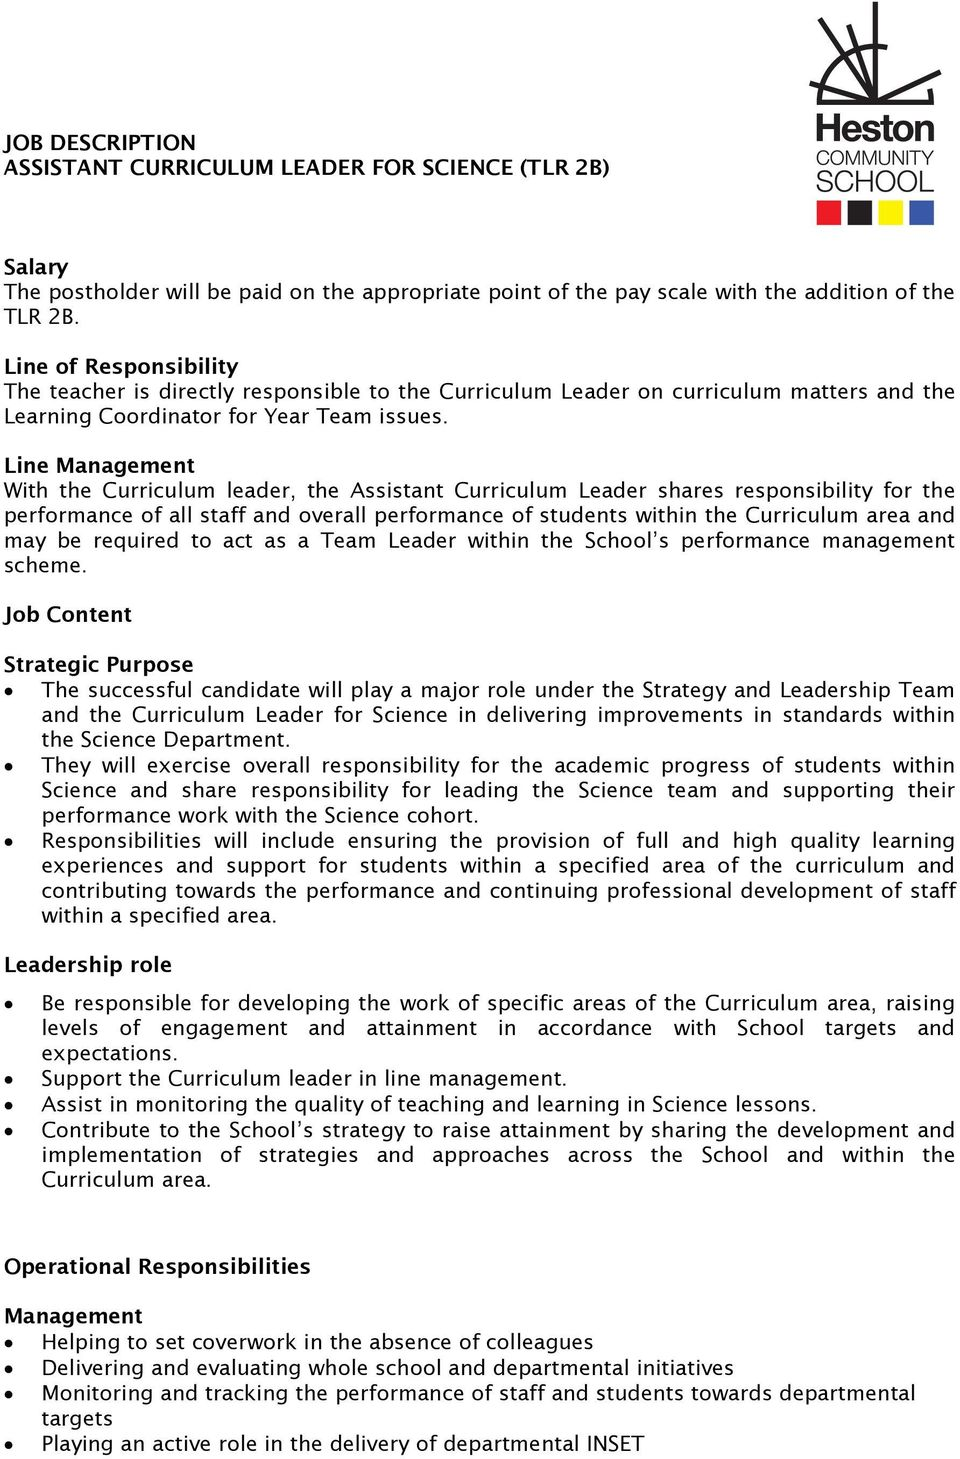 Line Management With the Curriculum leader, the Assistant Curriculum Leader shares responsibility for the performance of all staff and overall performance of students within the Curriculum area and